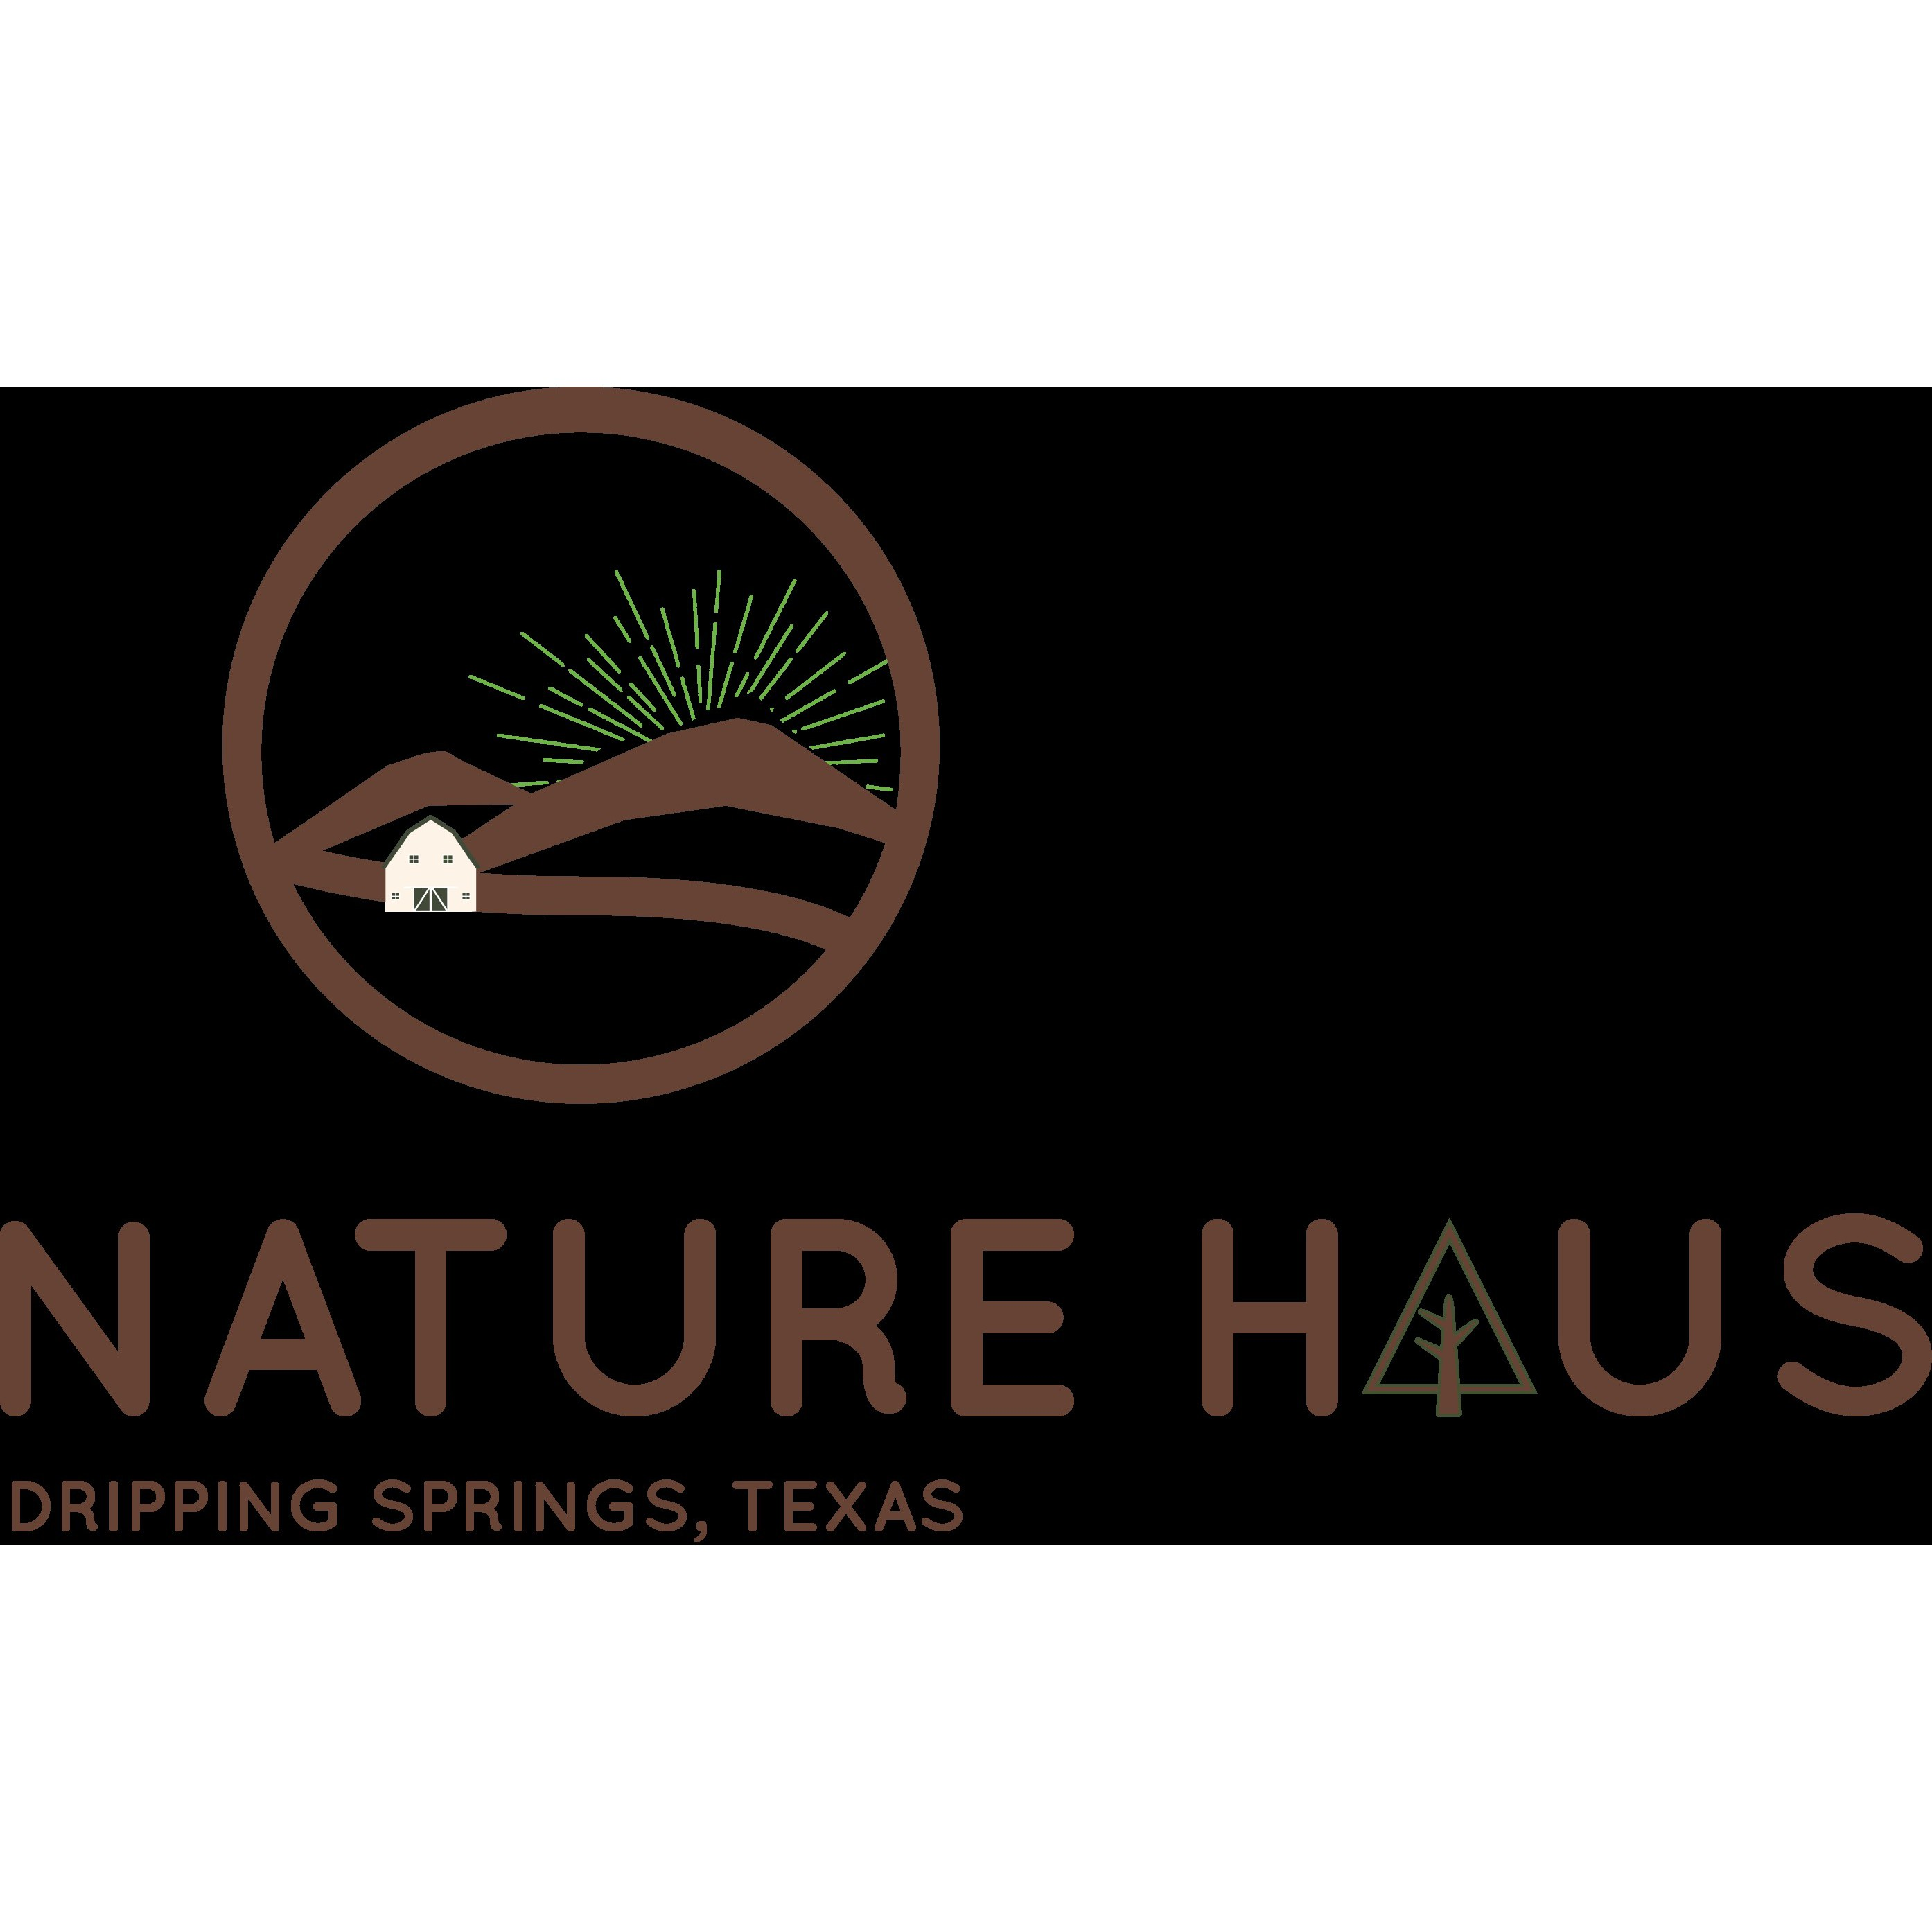 The Nature Haus